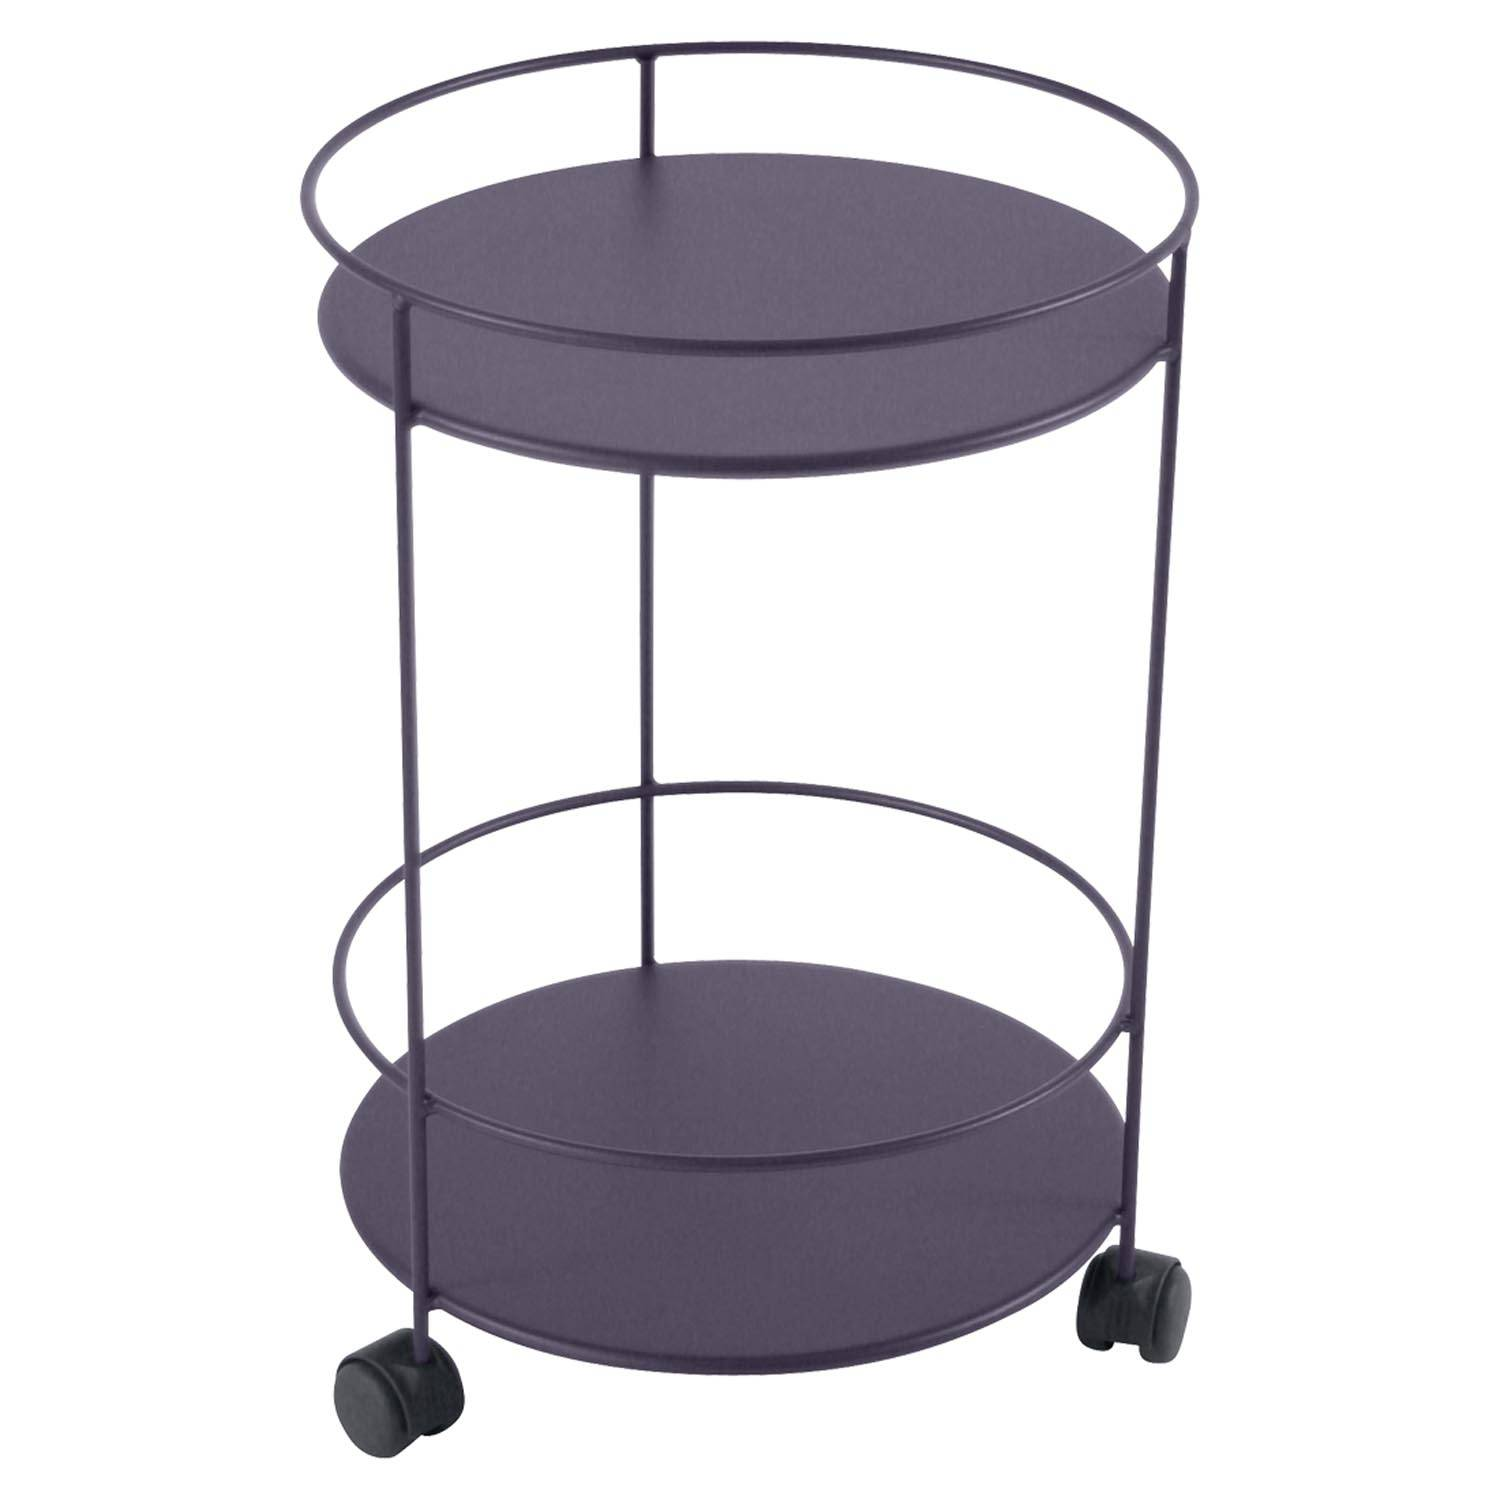 Fermob Small Table Perforated Ø40, Plum